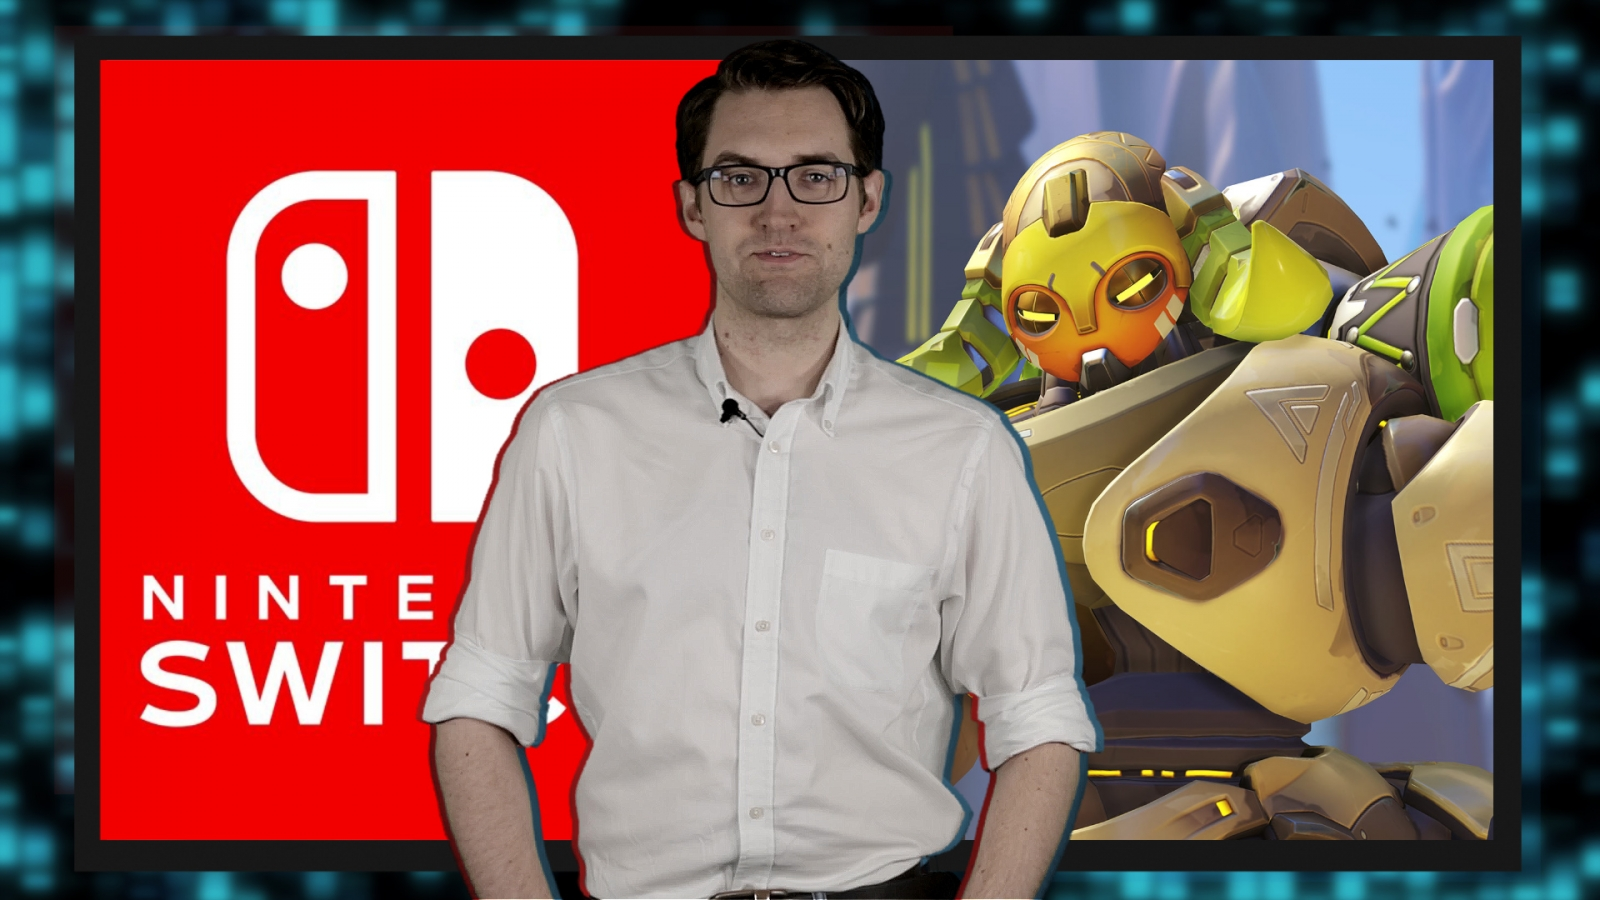 Video game news round-up: Nintendo Switch sales, Overwatch's Orisa and No Man's Sky update